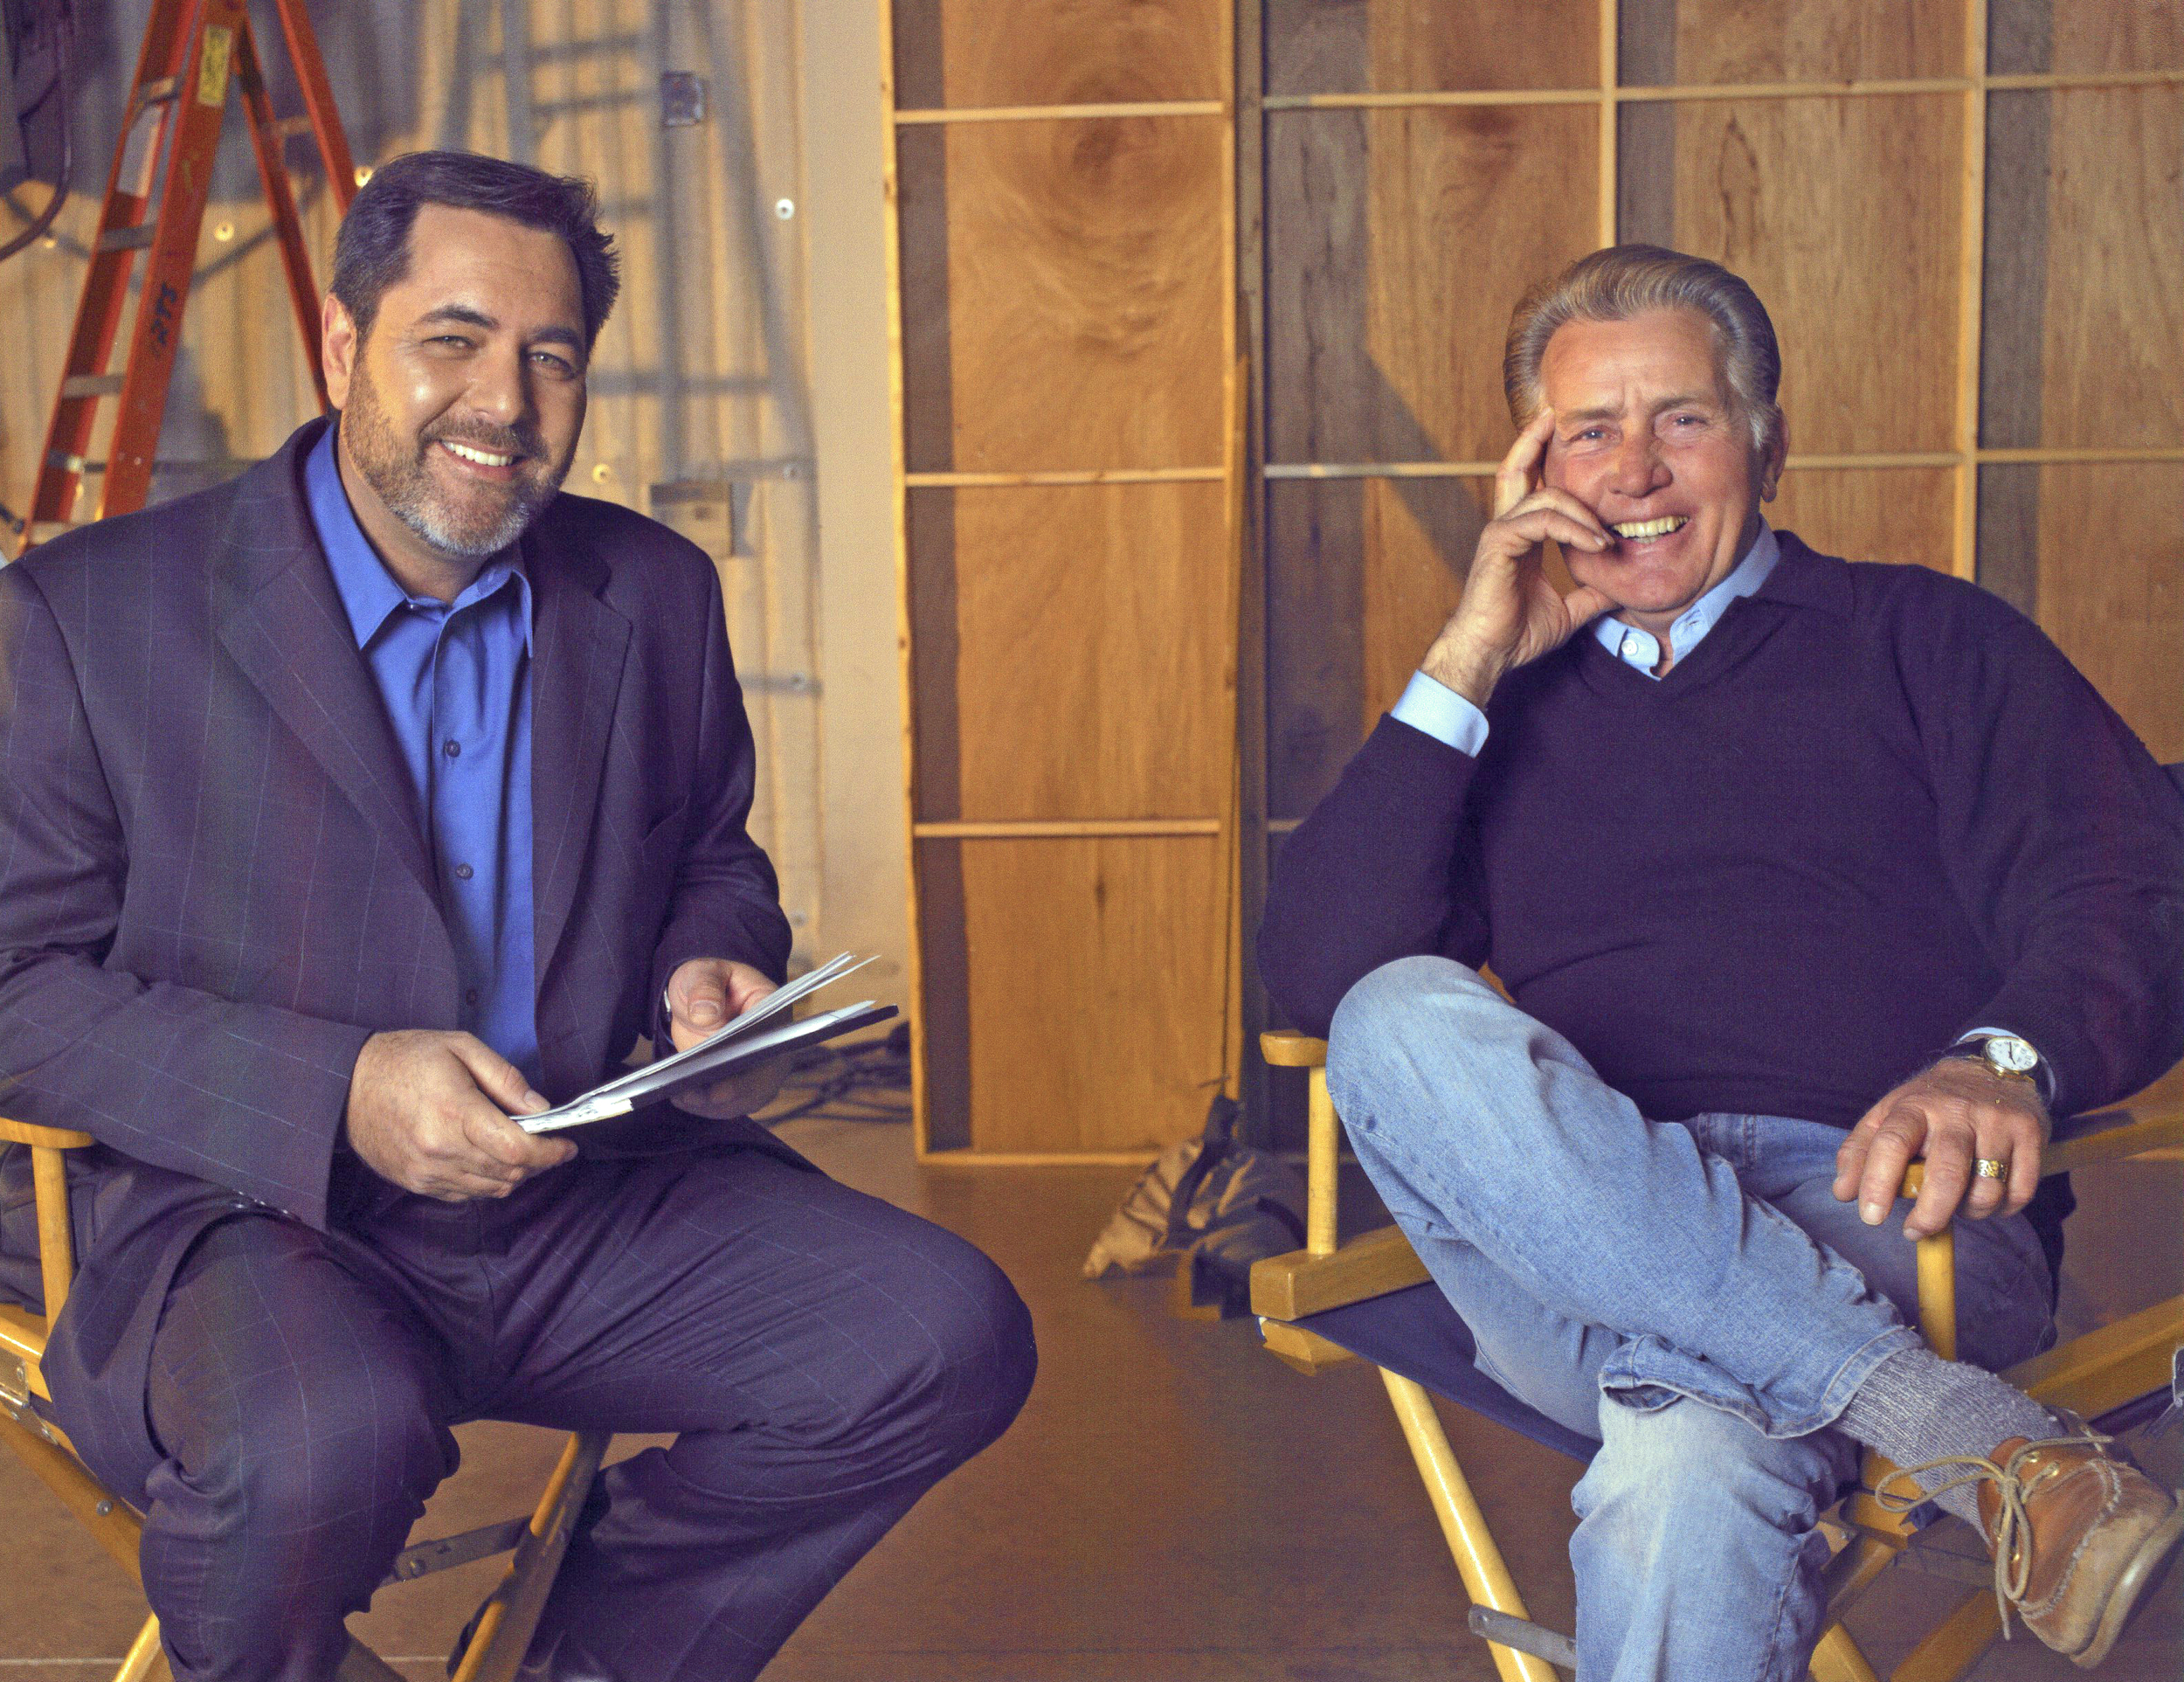 Jerry Interviewing client Martin Sheen